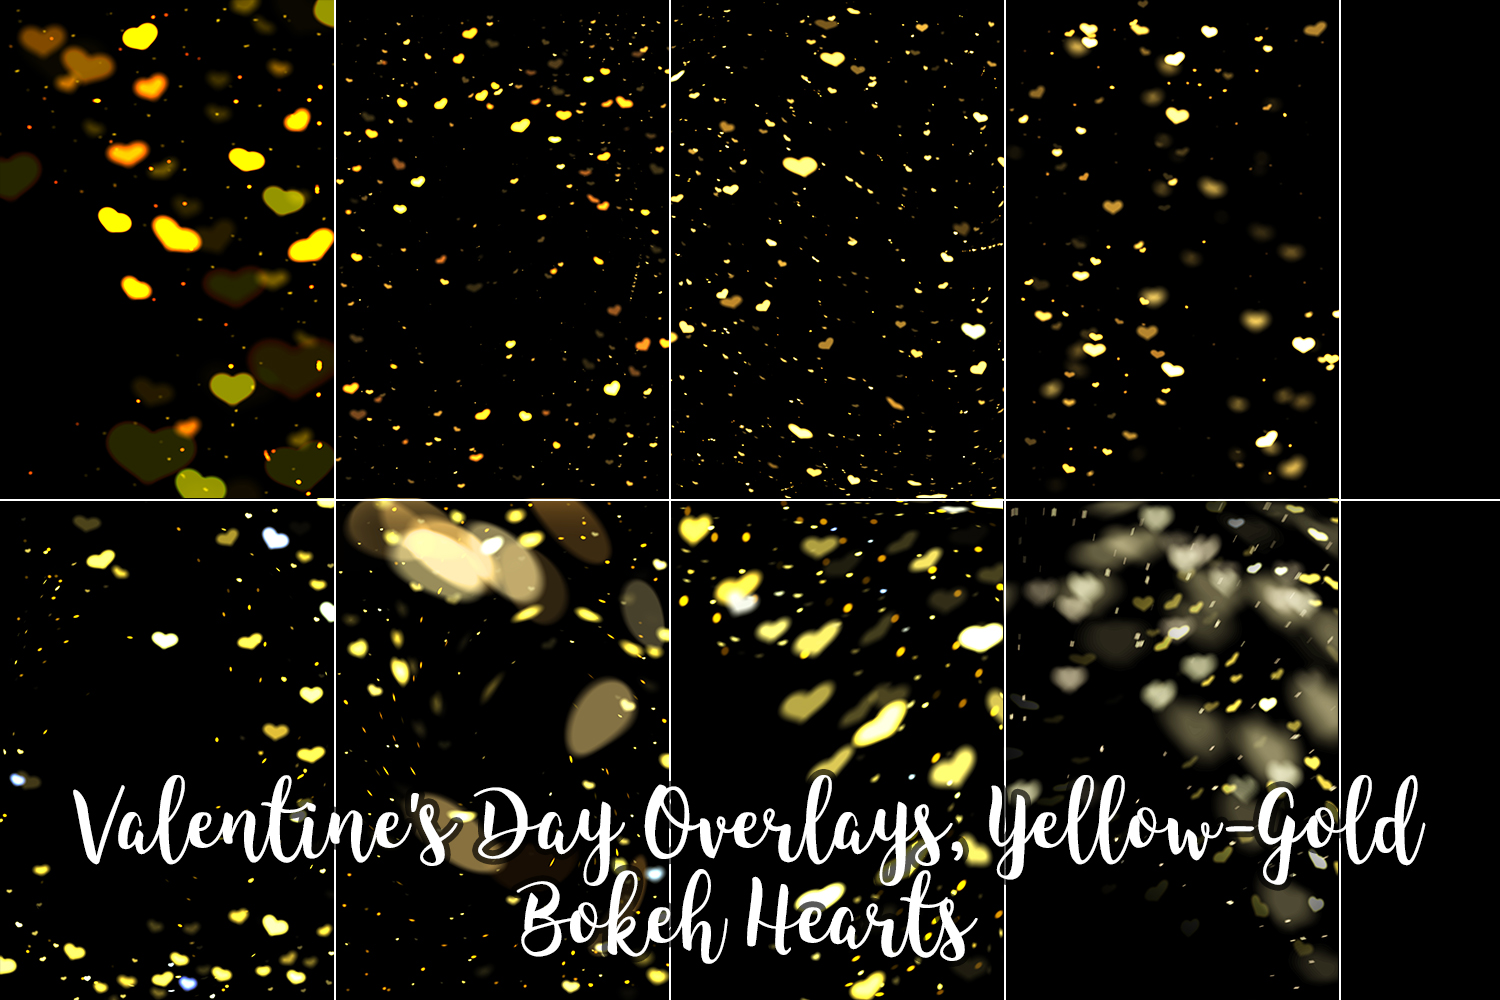 Valentine's Day Overlays, Yellow Gold Hearts Bokeh Overlays example image 4